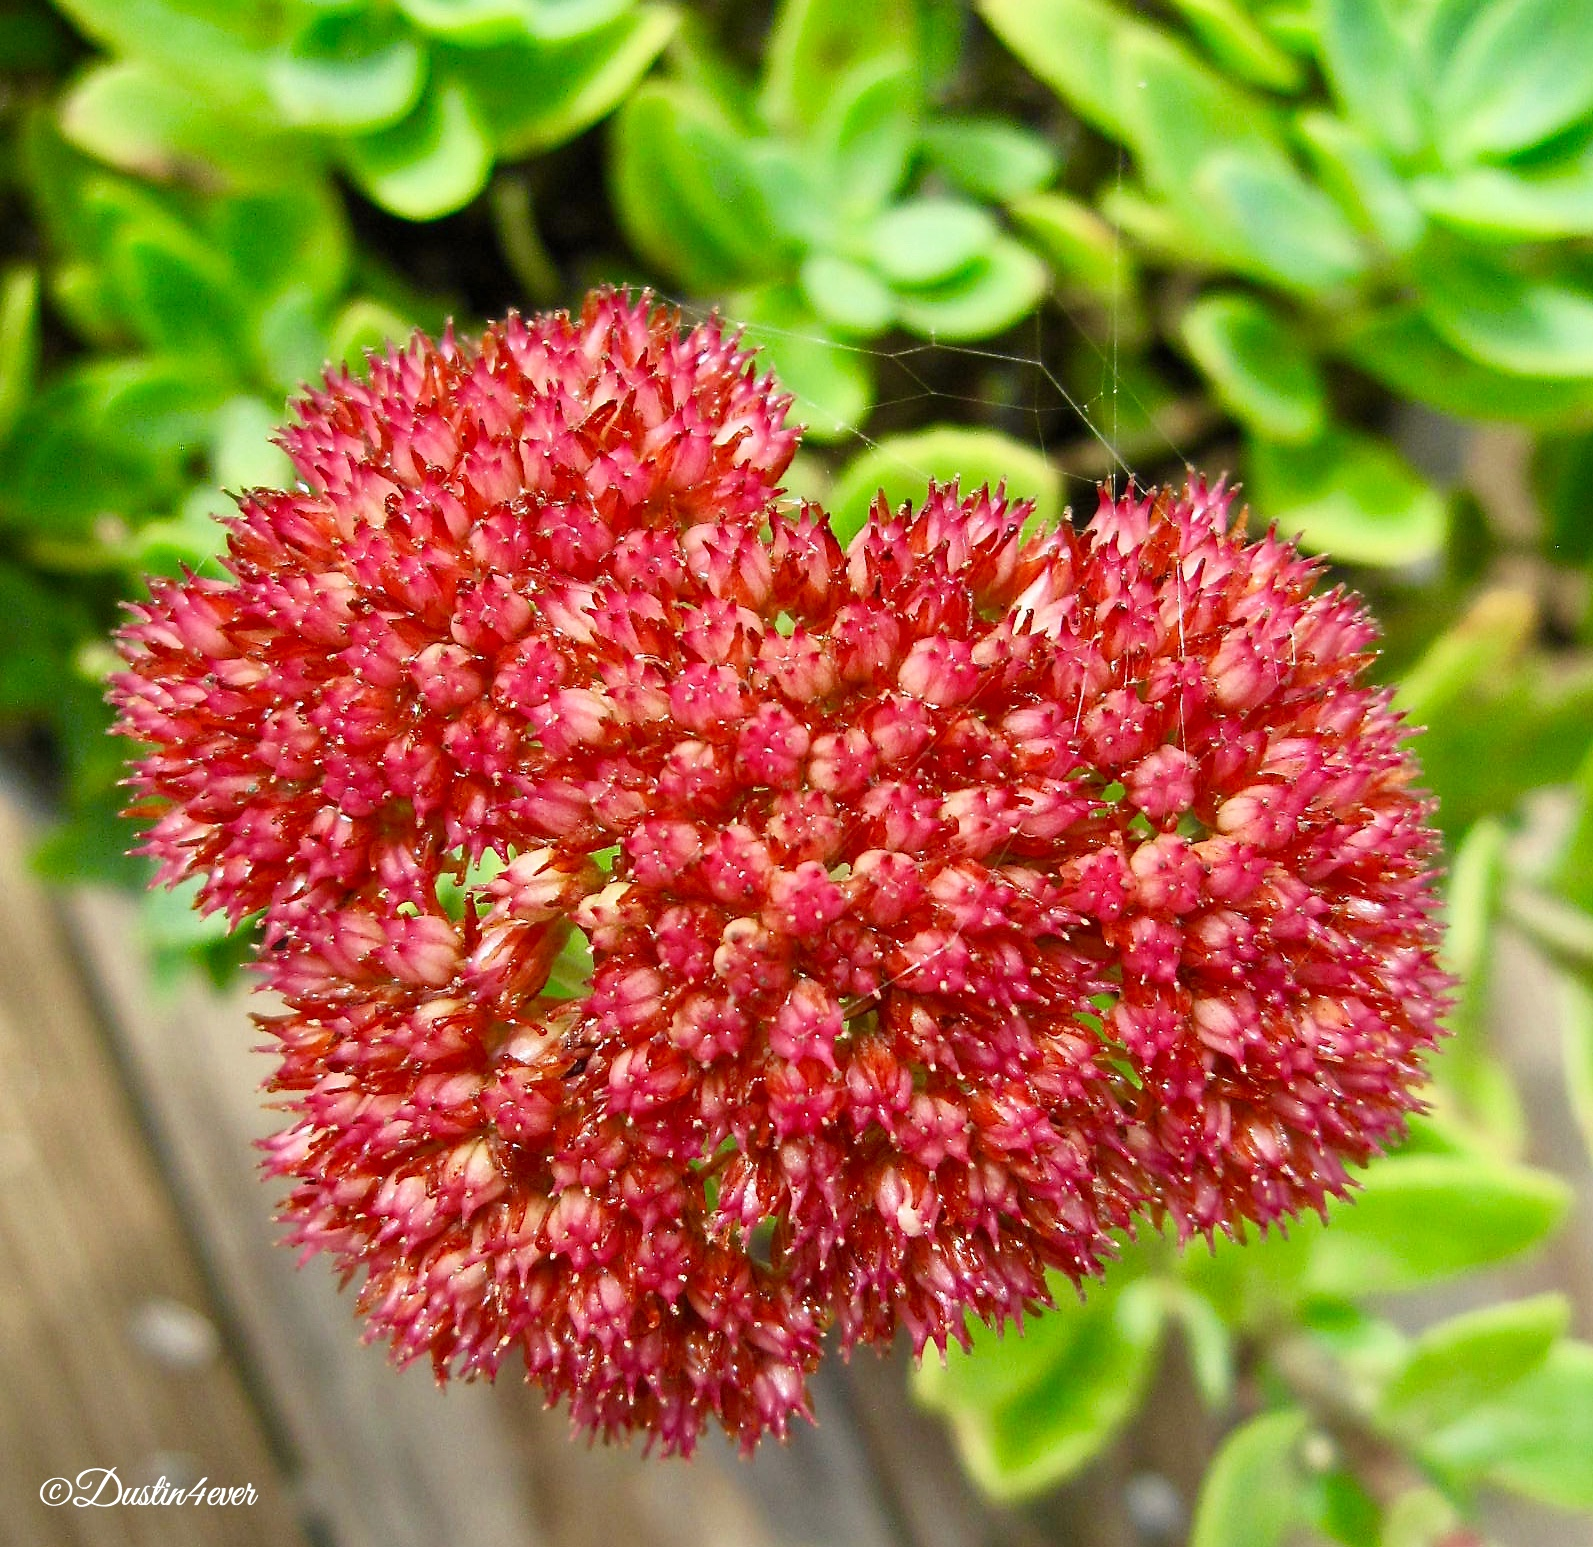 Heart of Sedum